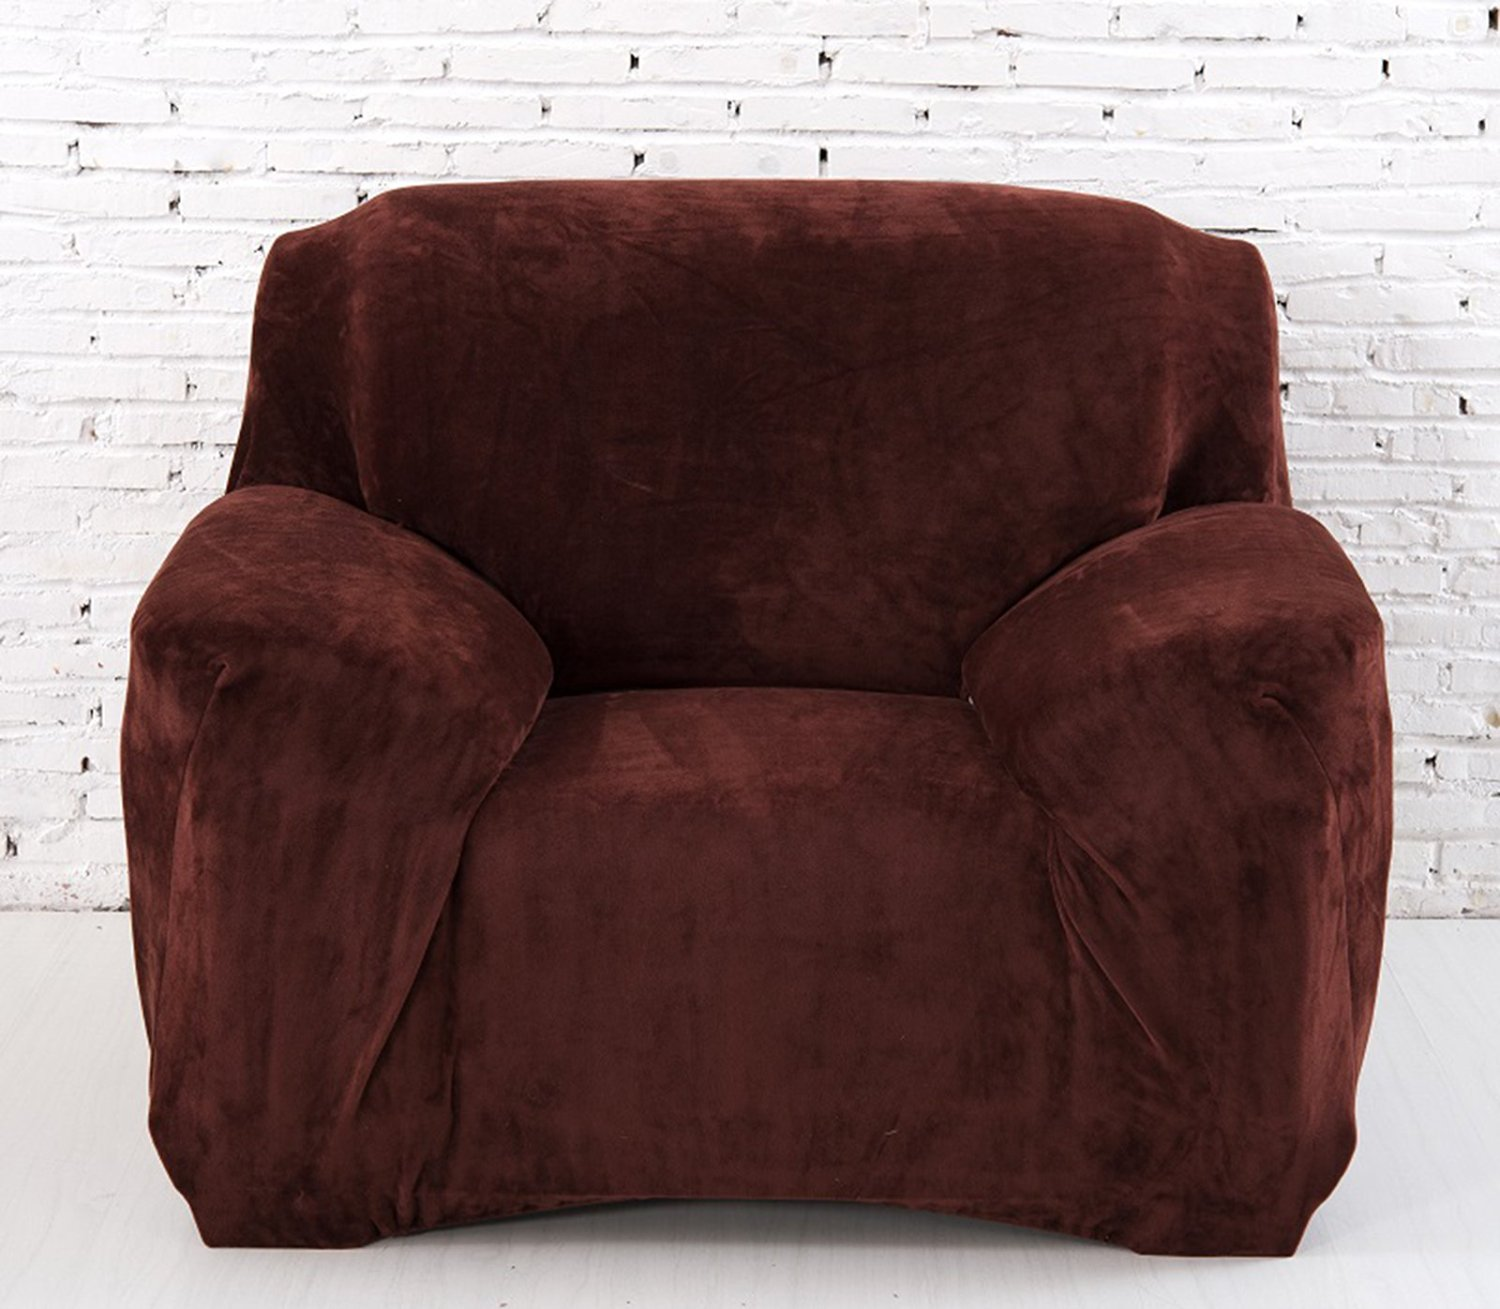 Get Quotations Prefe Microsuede Couch Sofa Furniture Slipcover With Elastic Band Under Seat Cushion